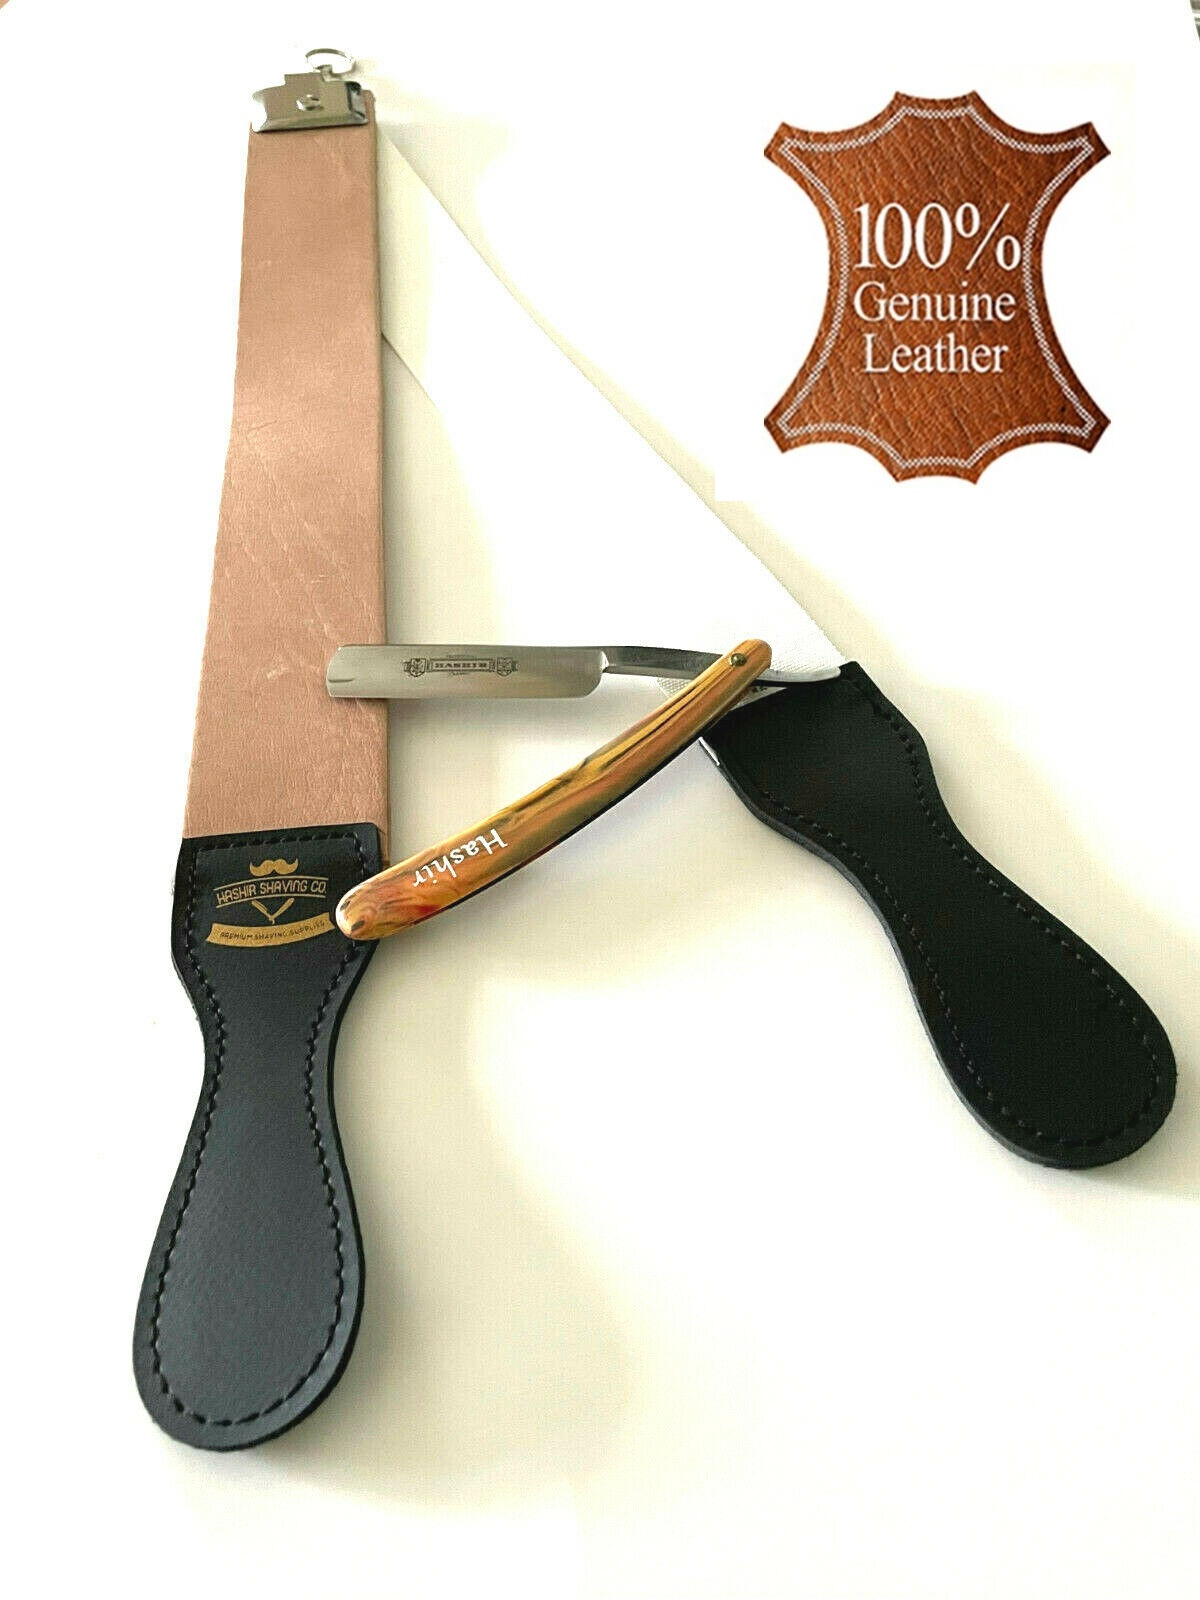 Professional Leather Shaping Strop